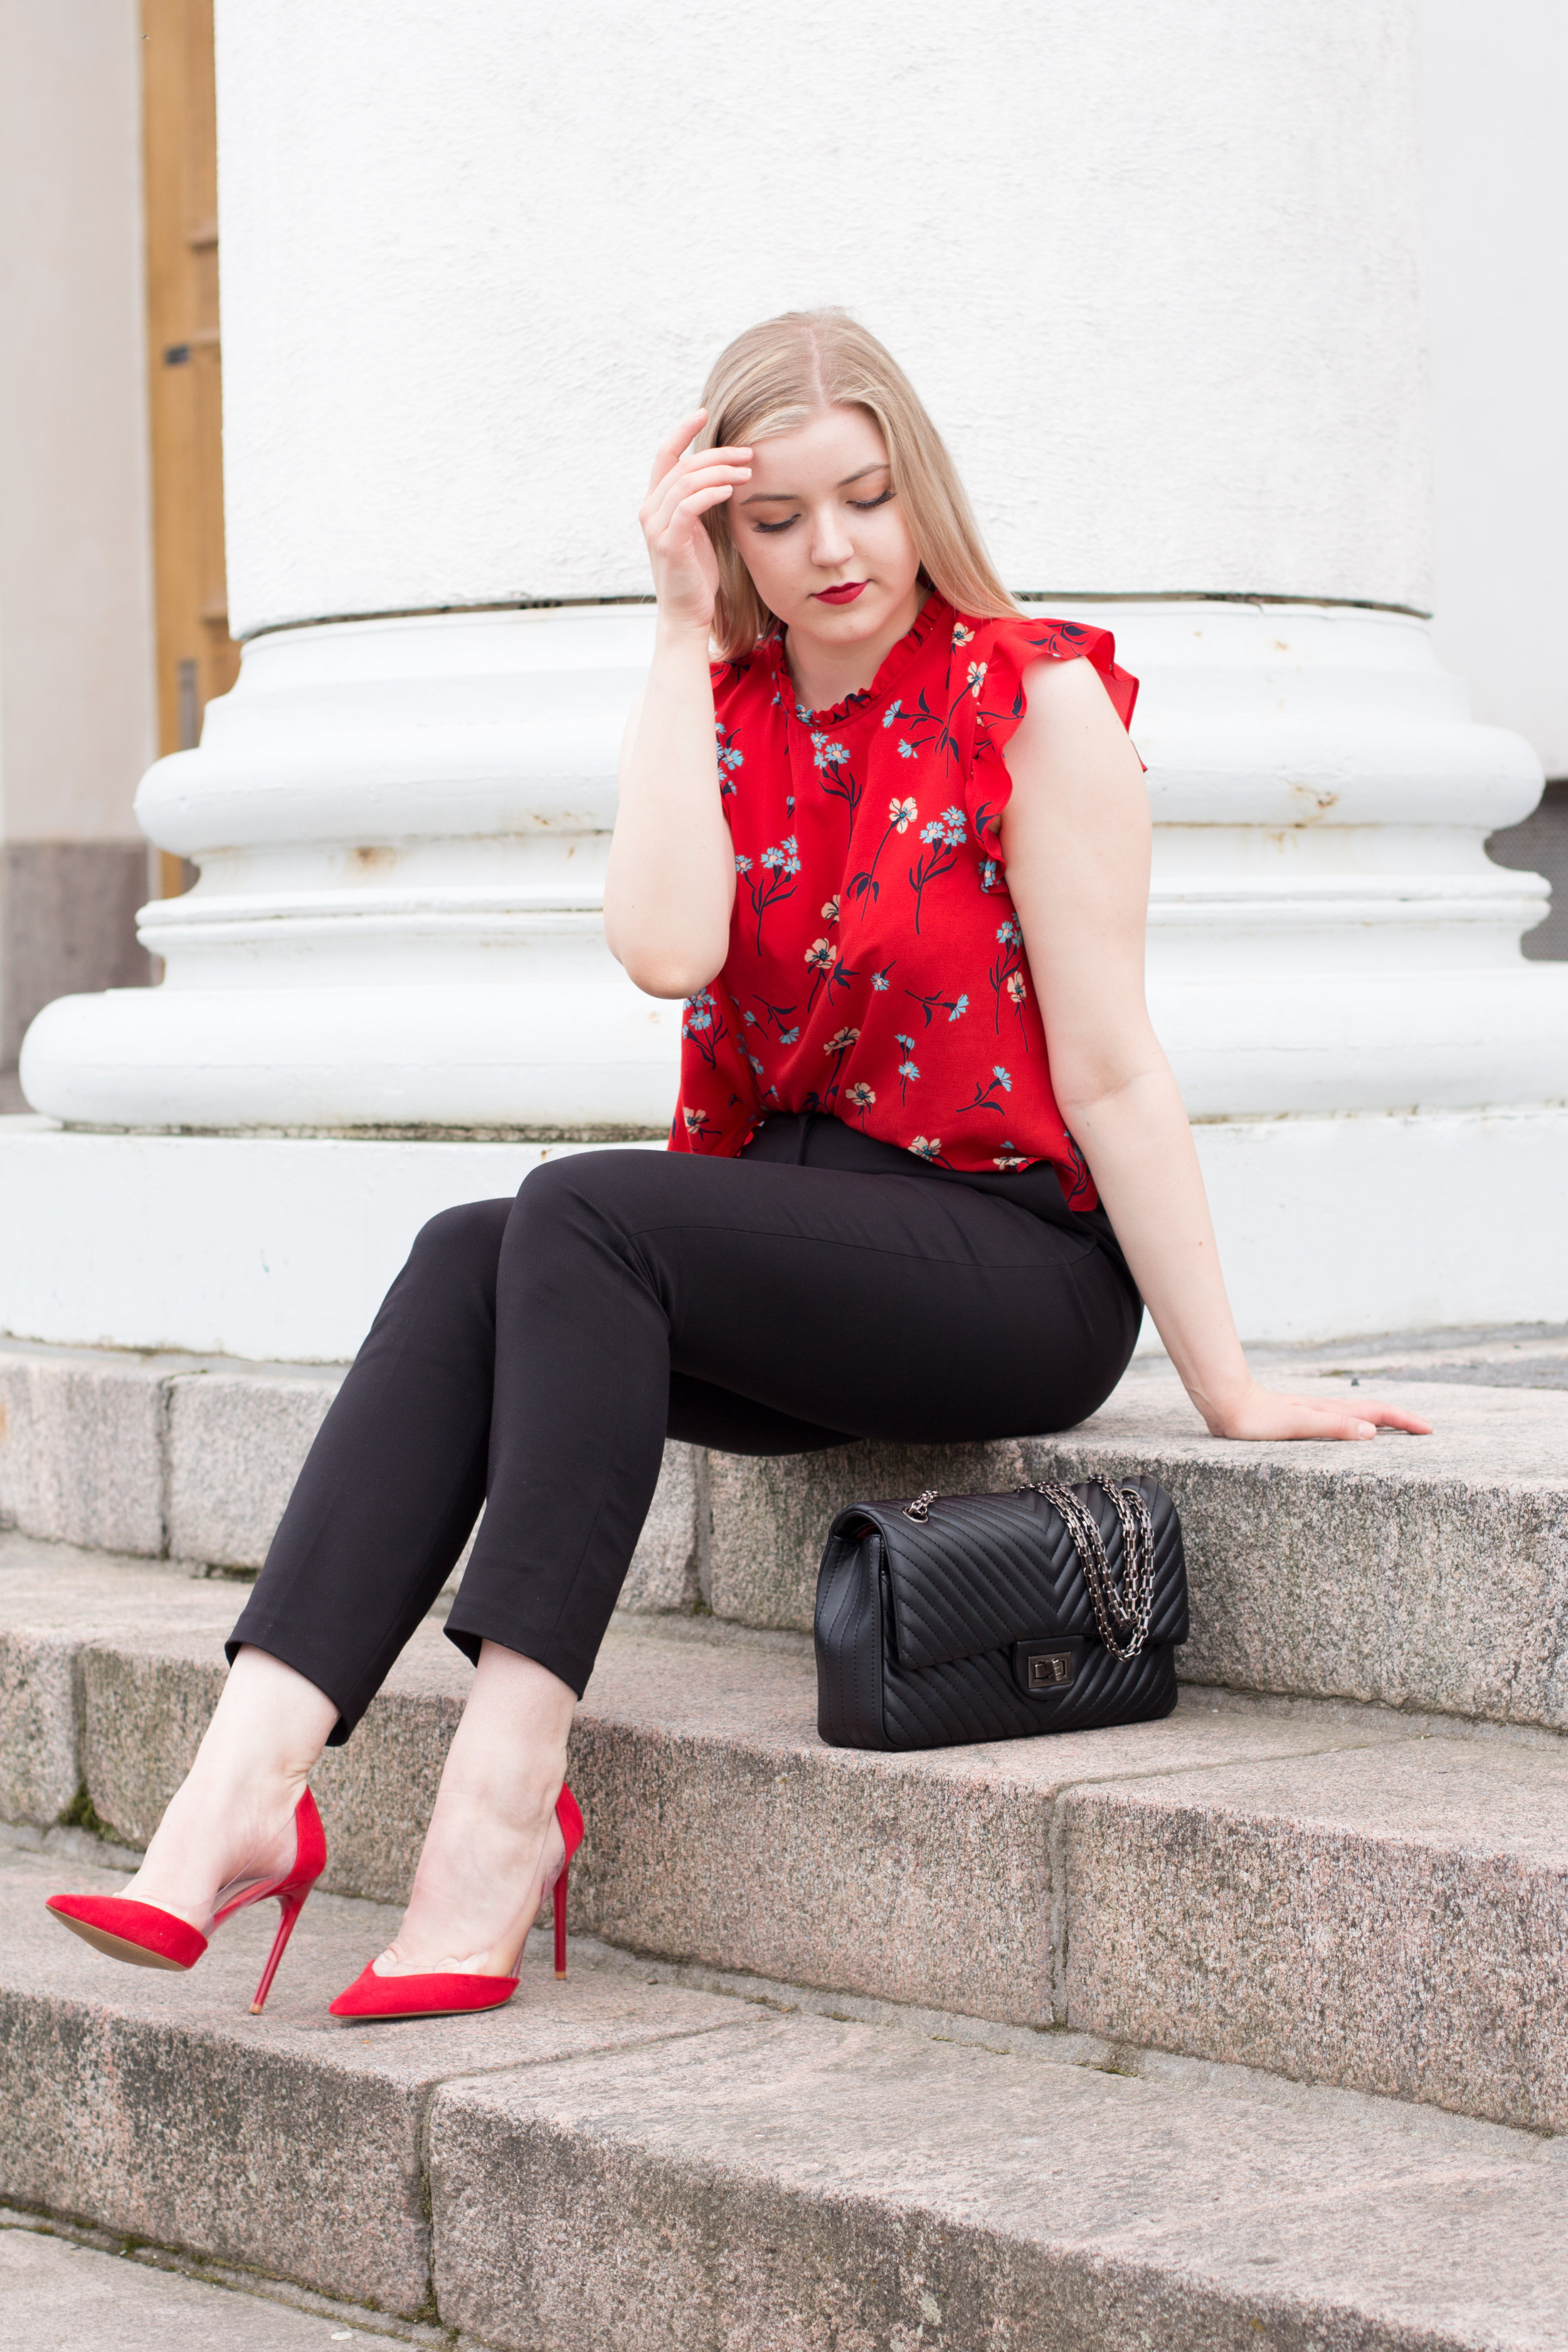 Red floral shirt outfit